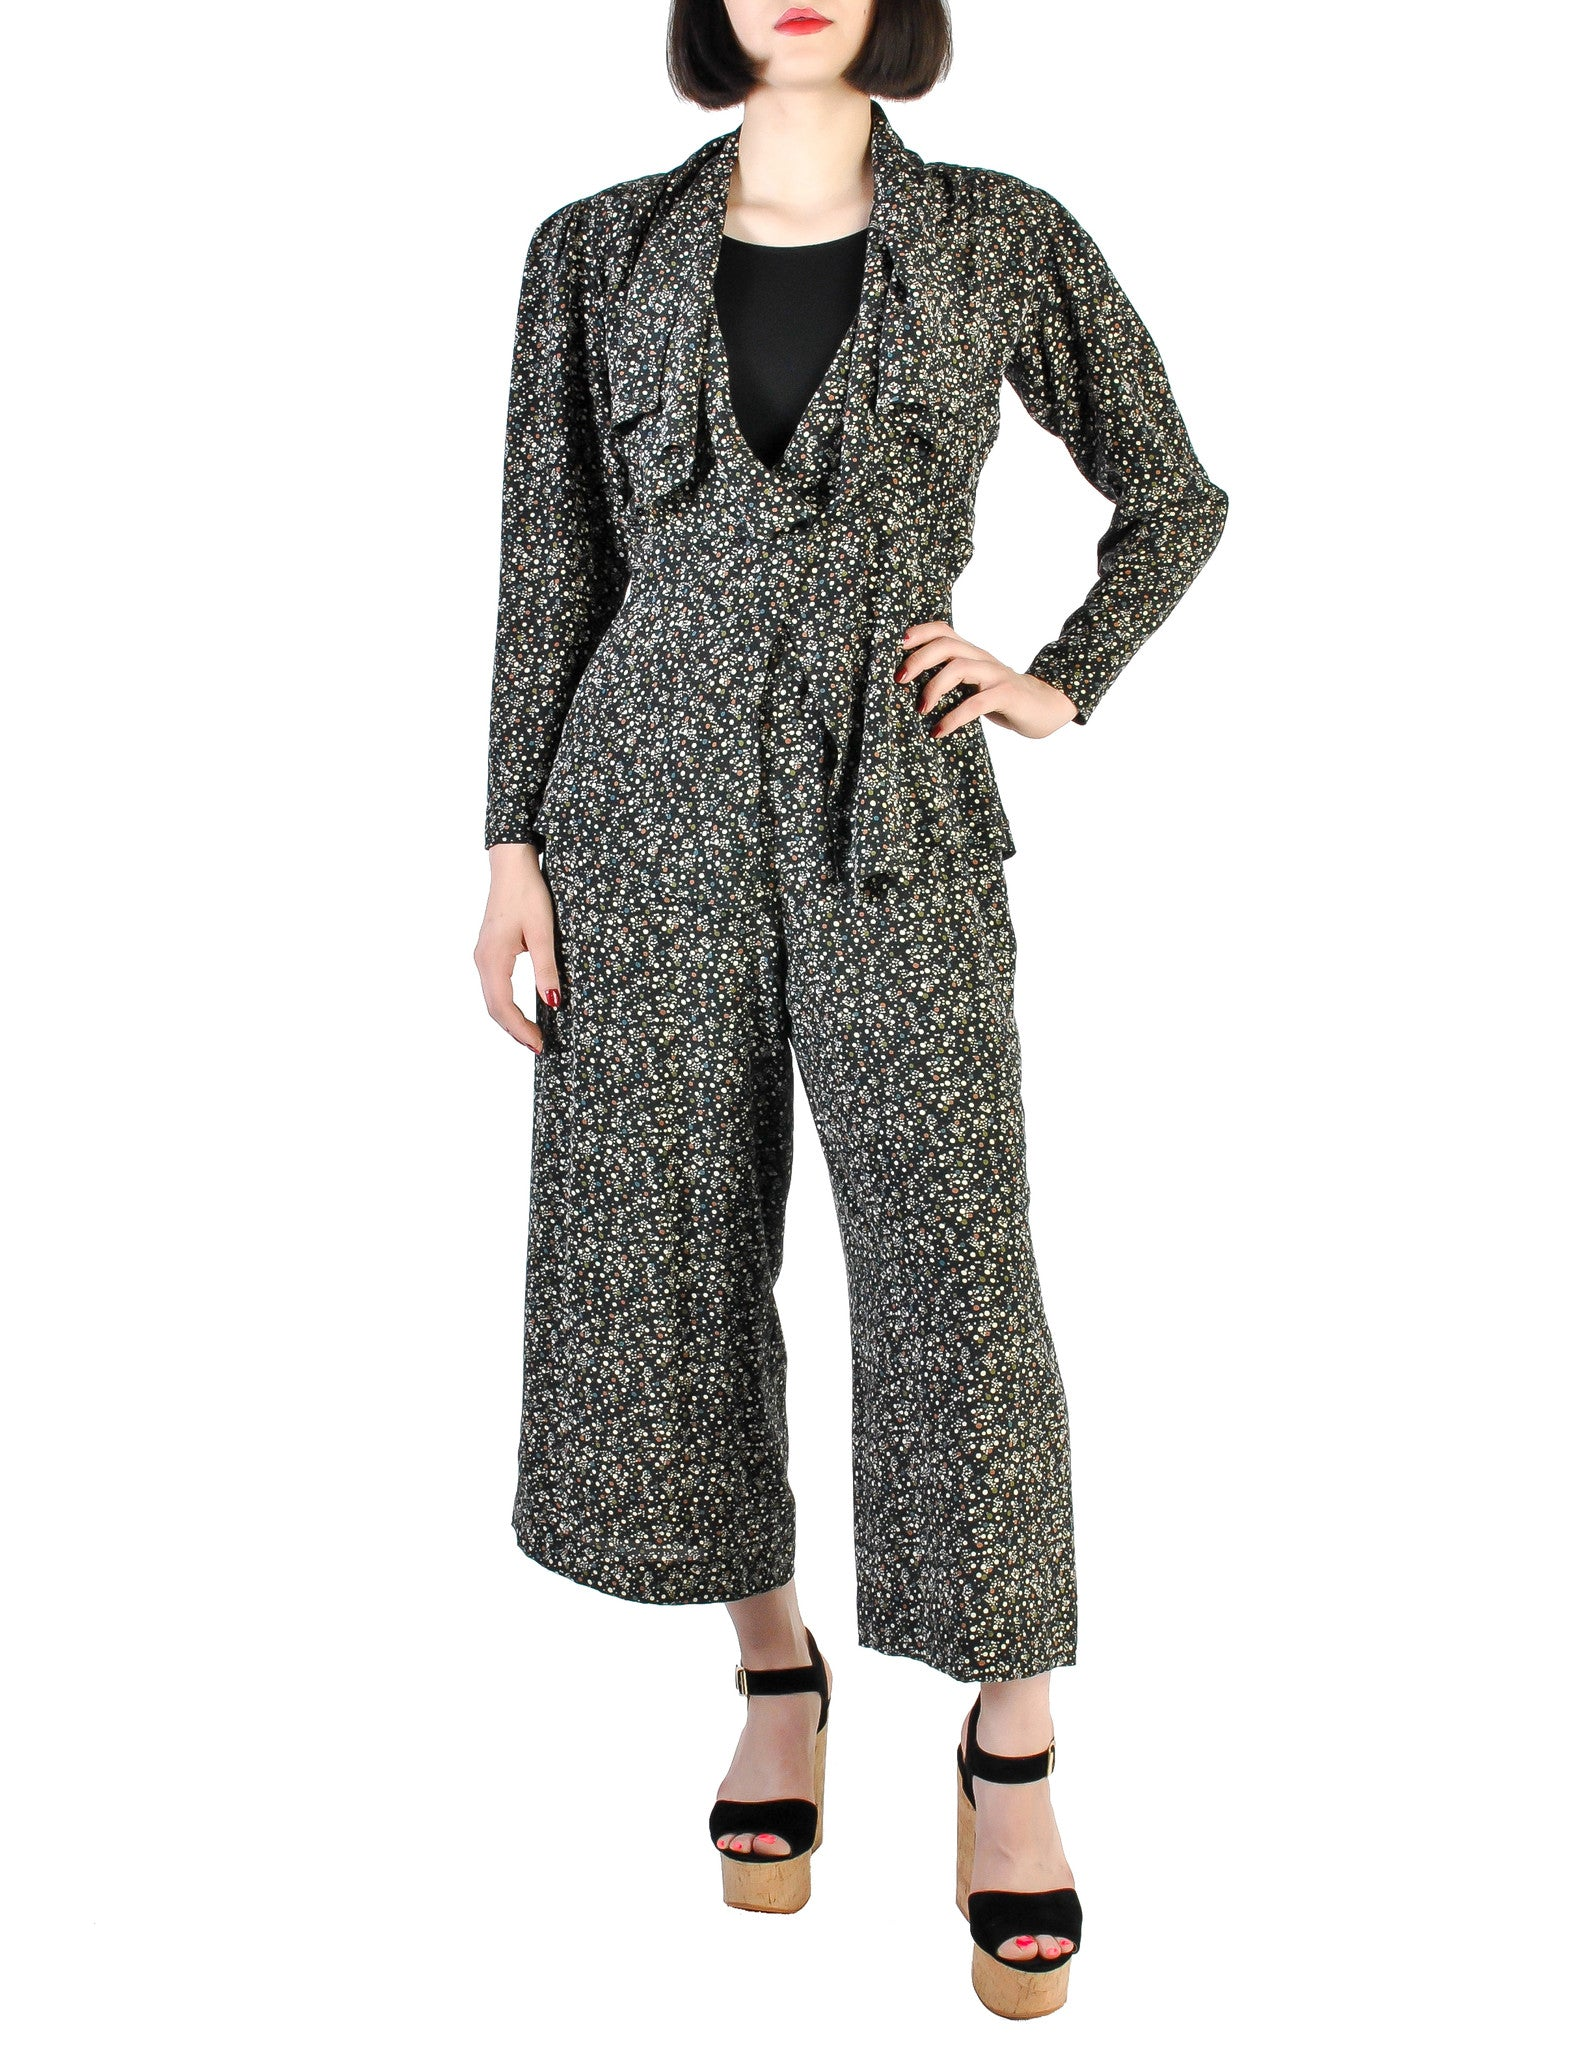 Jean Muir Vintage Polka Dot Silk Draping Jacket and Pants Ensemble Set - Amarcord Vintage Fashion  - 1